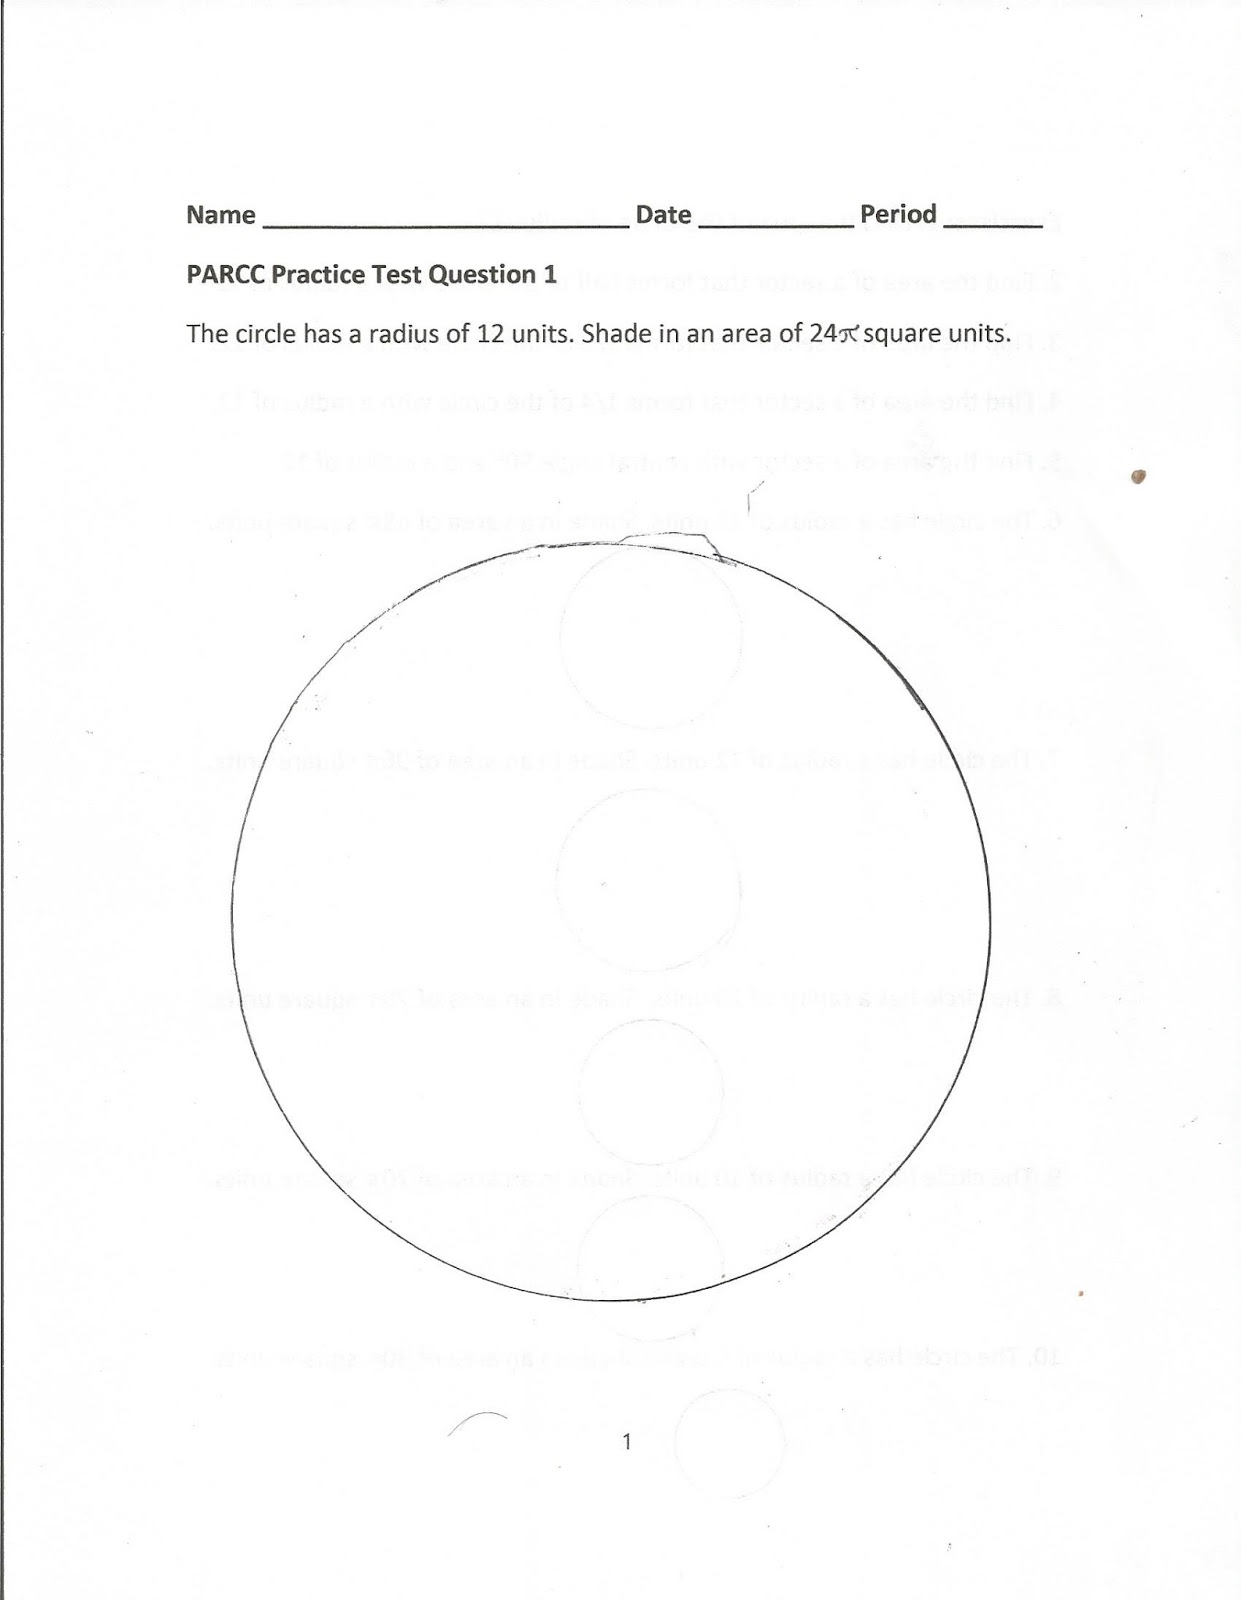 Geometry Common Core Style Parcc Practice Test Question 1 Day 144